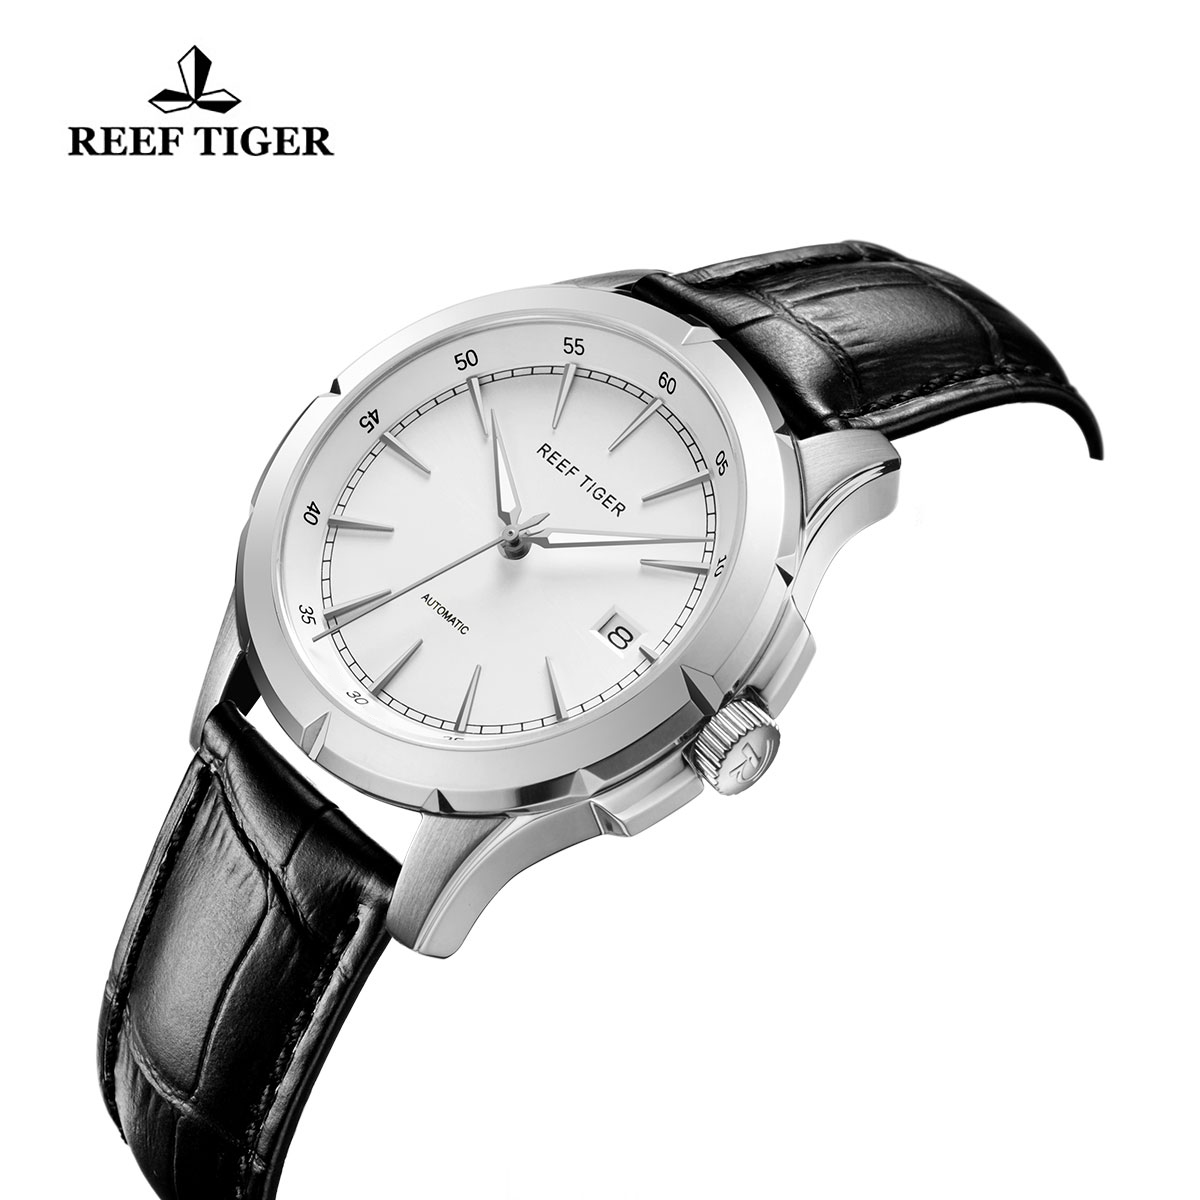 Reef Tiger Spirit Of Liberty Business Watch White Dial Black Calfskin Leather RGA819-YWBS